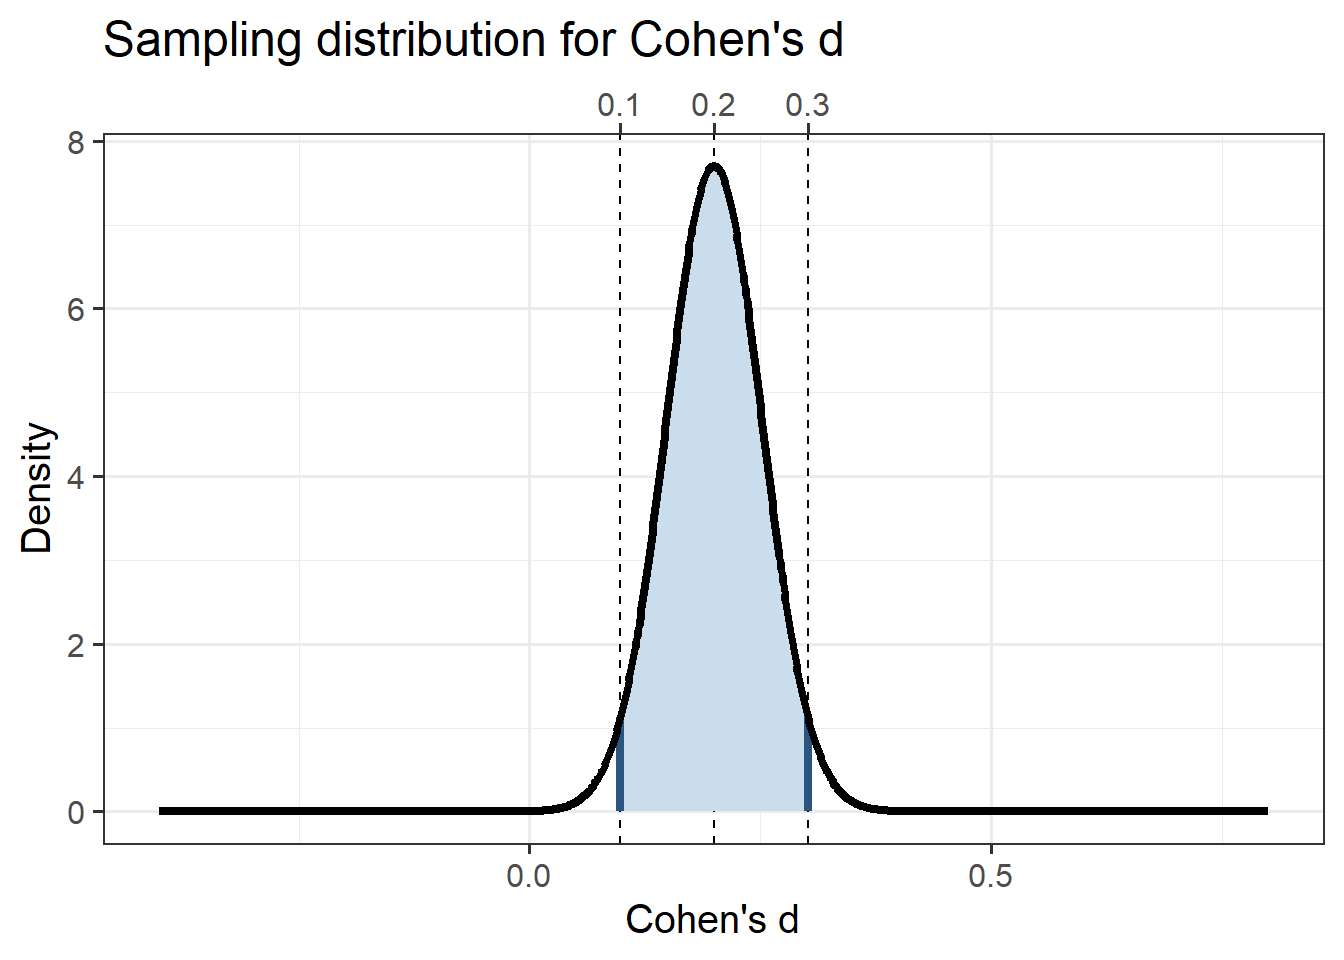 Cohen's d's sampling distribution for a small population effect size (d = 0.2) and for a 2-cell design with 750 participants per group.